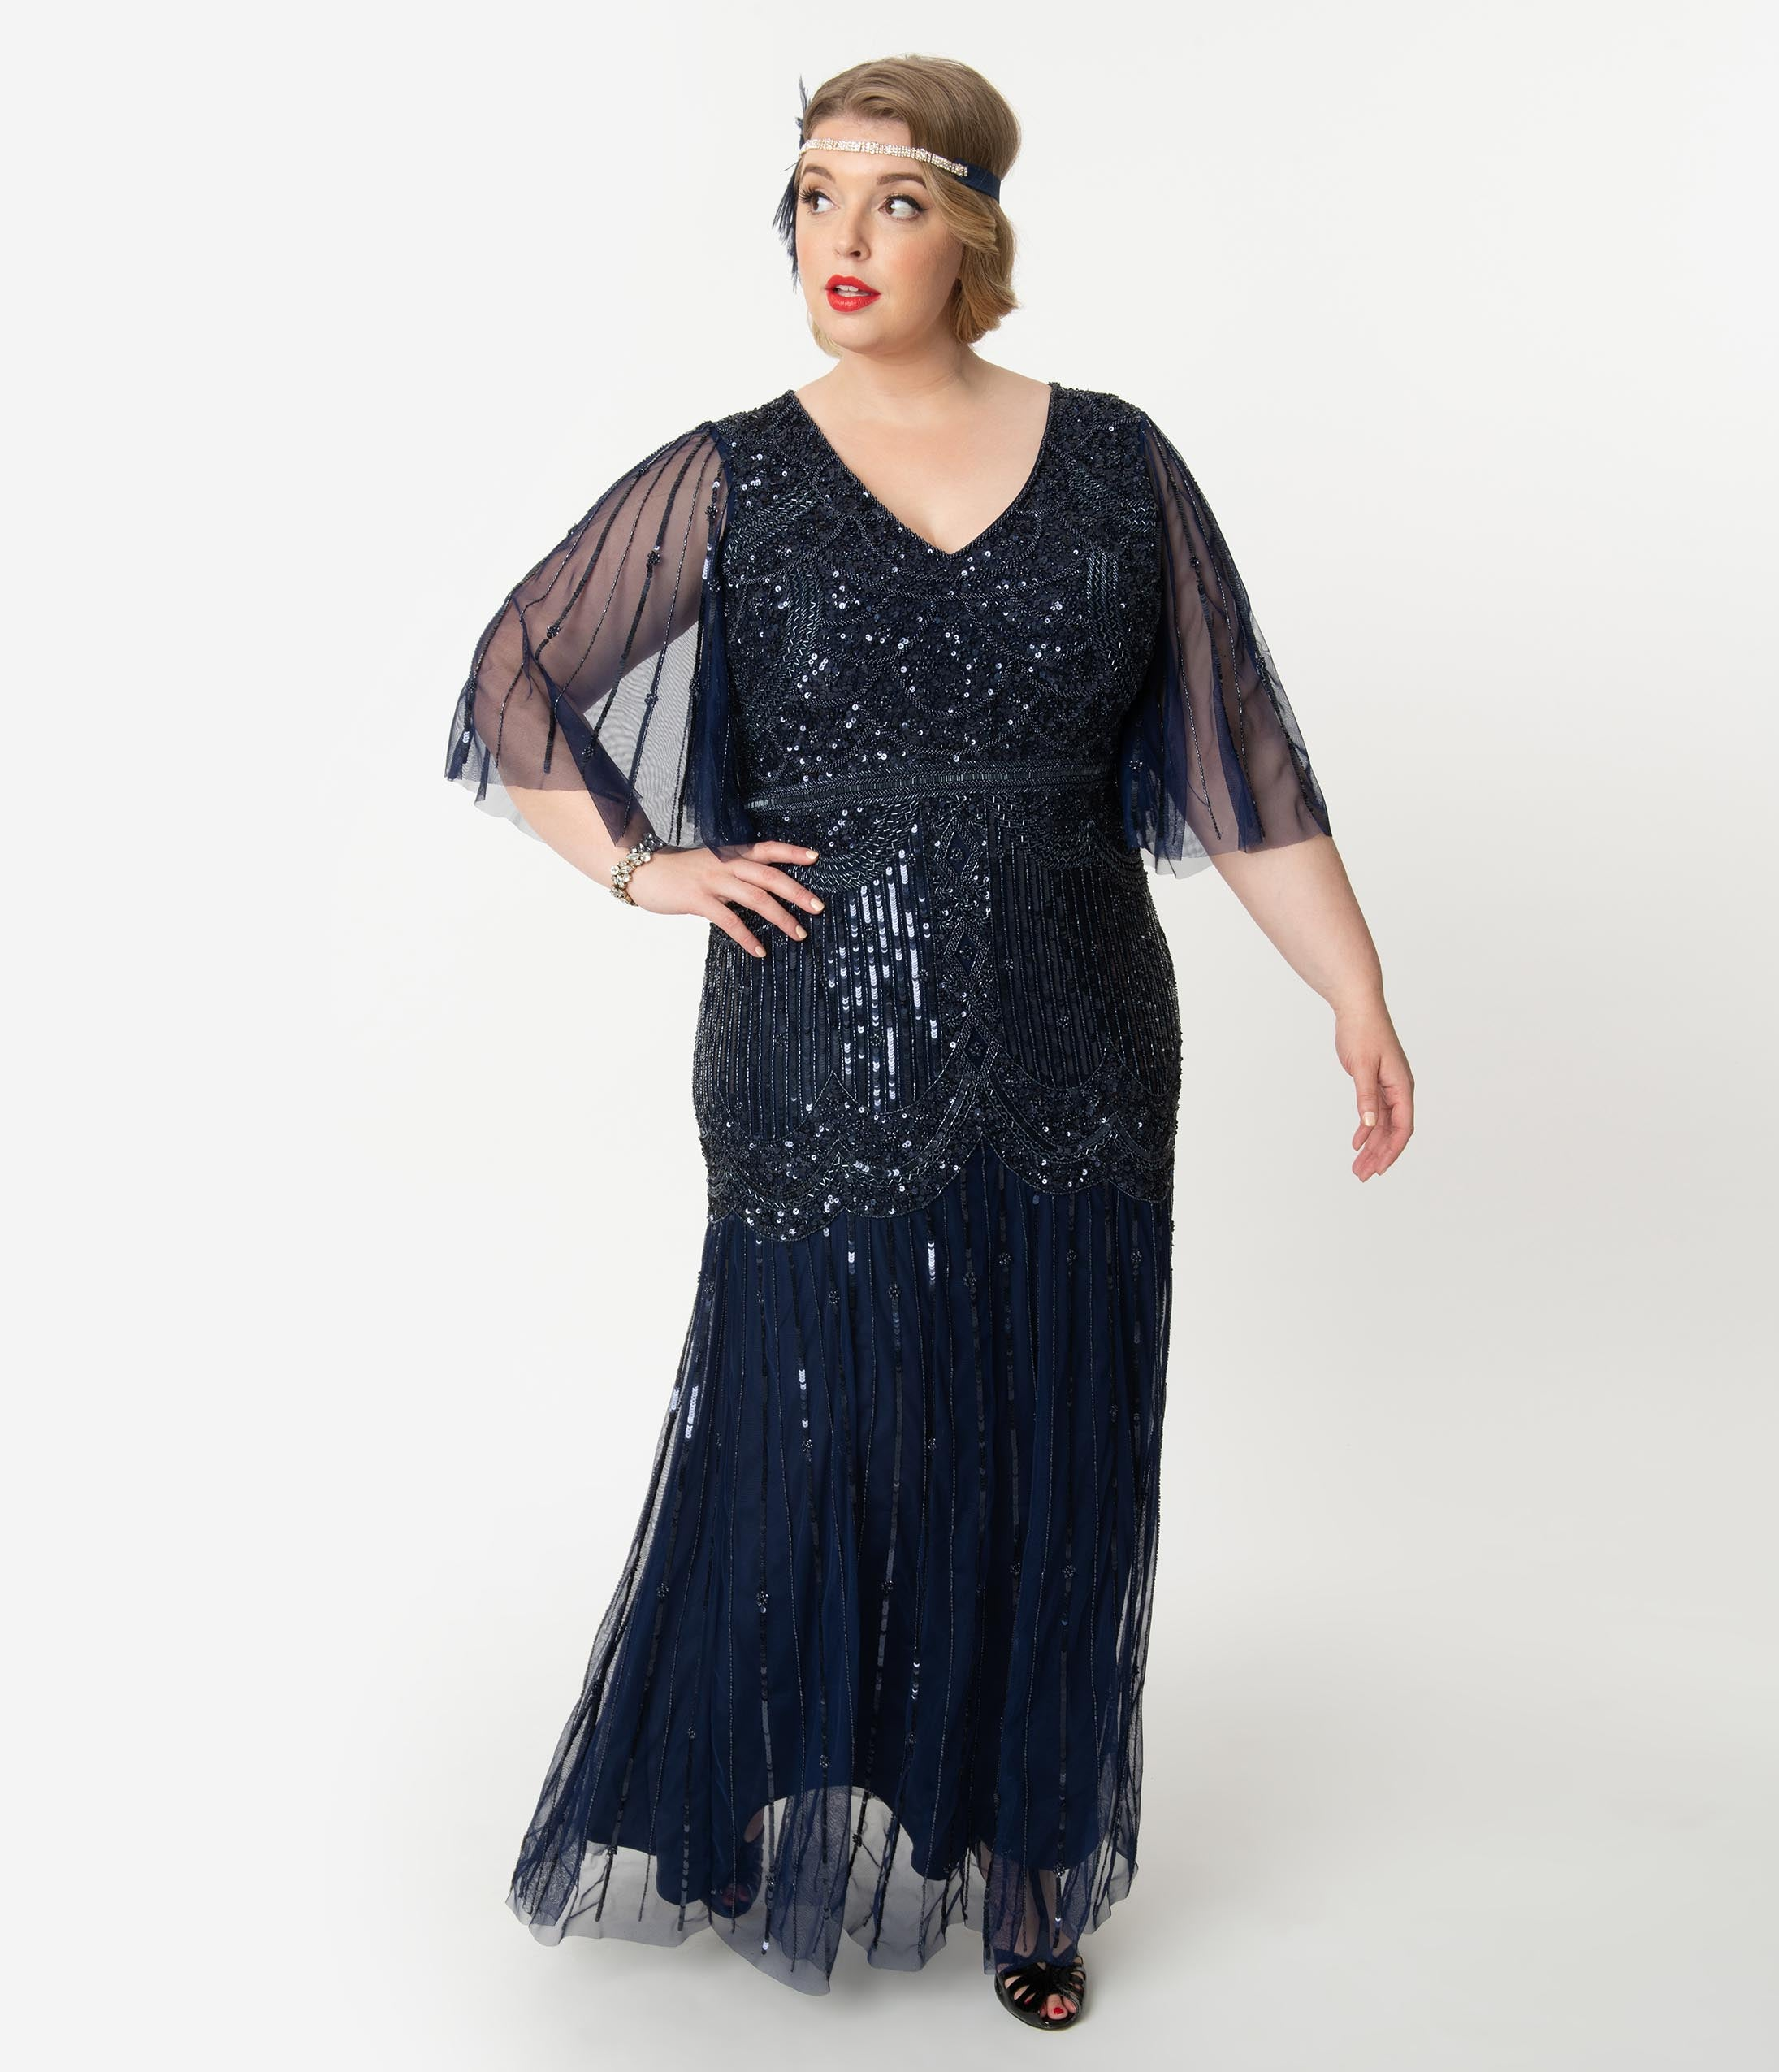 1920s Plus Size Flapper Dresses, Gatsby Dresses, Flapper Costumes Plus Size Navy Blue Sequin  Beaded Angel Sleeve Bettina Long Flapper Dress $268.00 AT vintagedancer.com